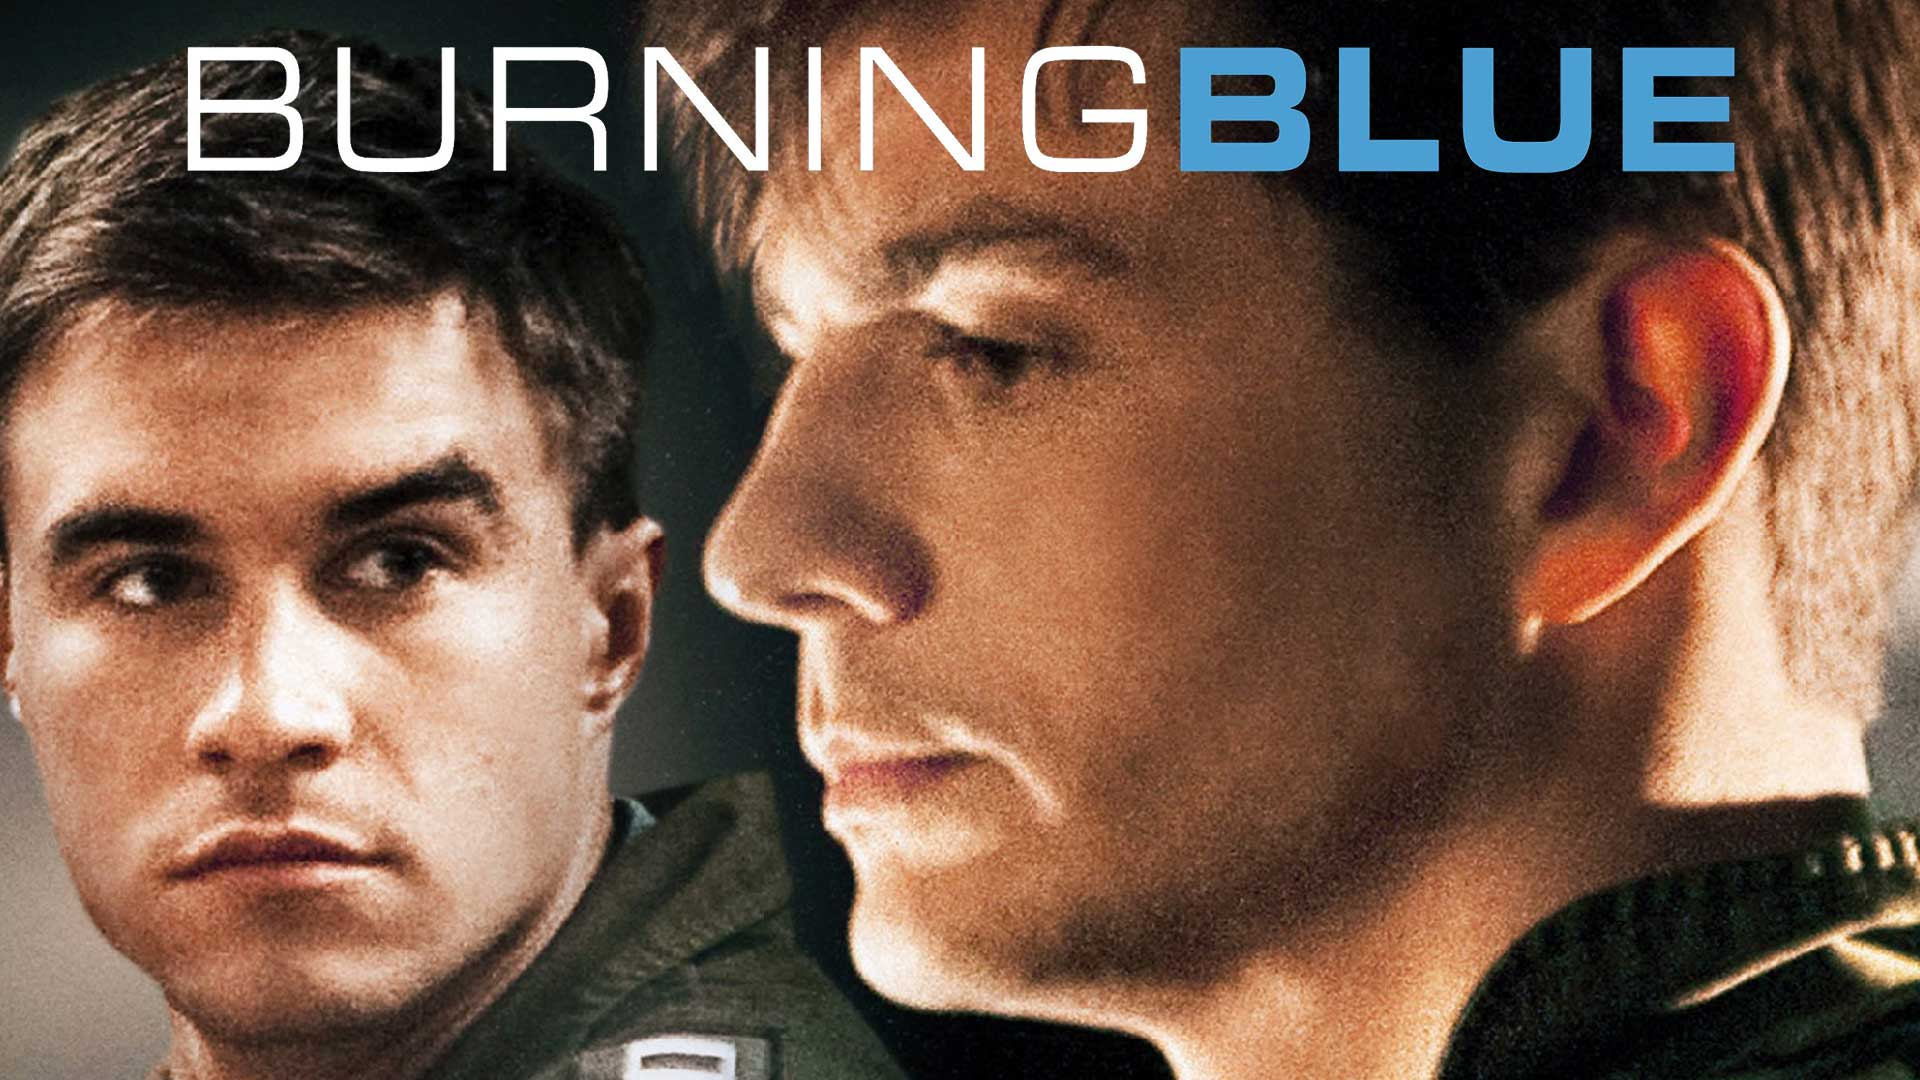 burning blue full movie watch online free